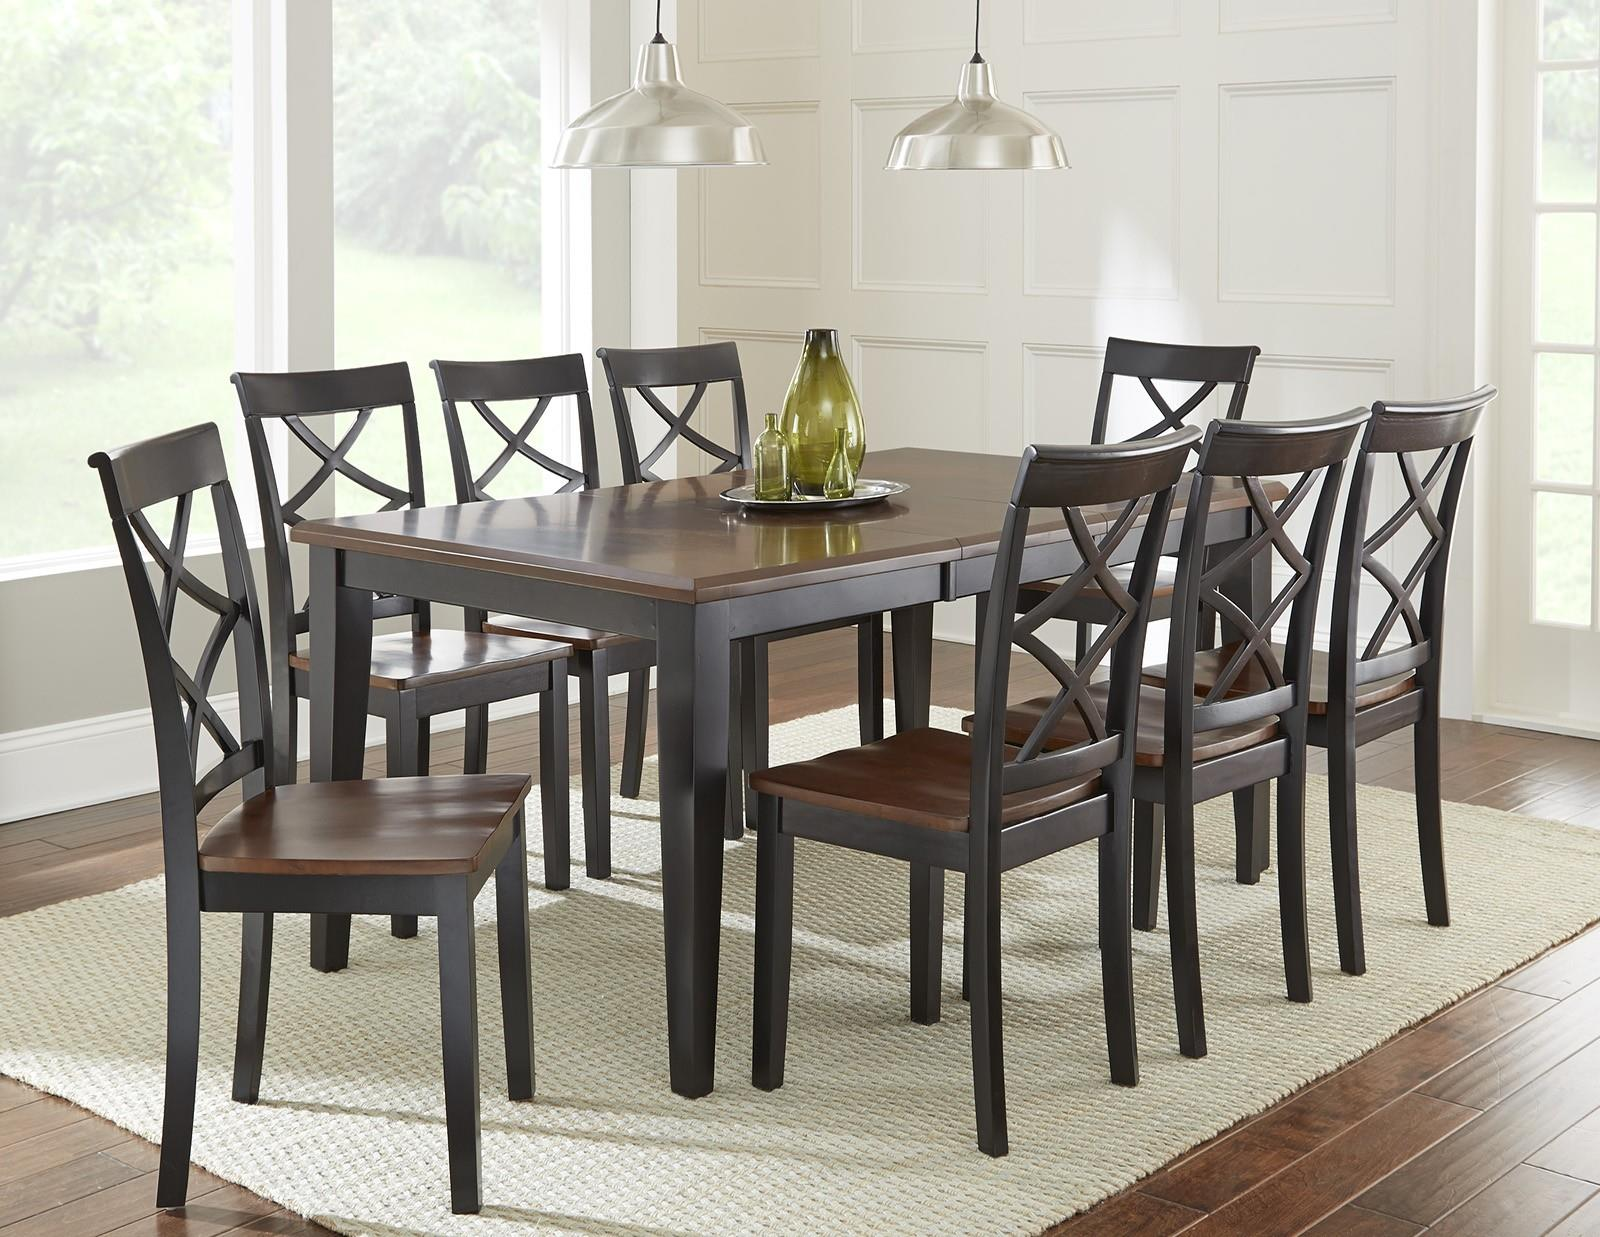 Belfort Essentials Rani 9 Piece Dining Set With Two Tone